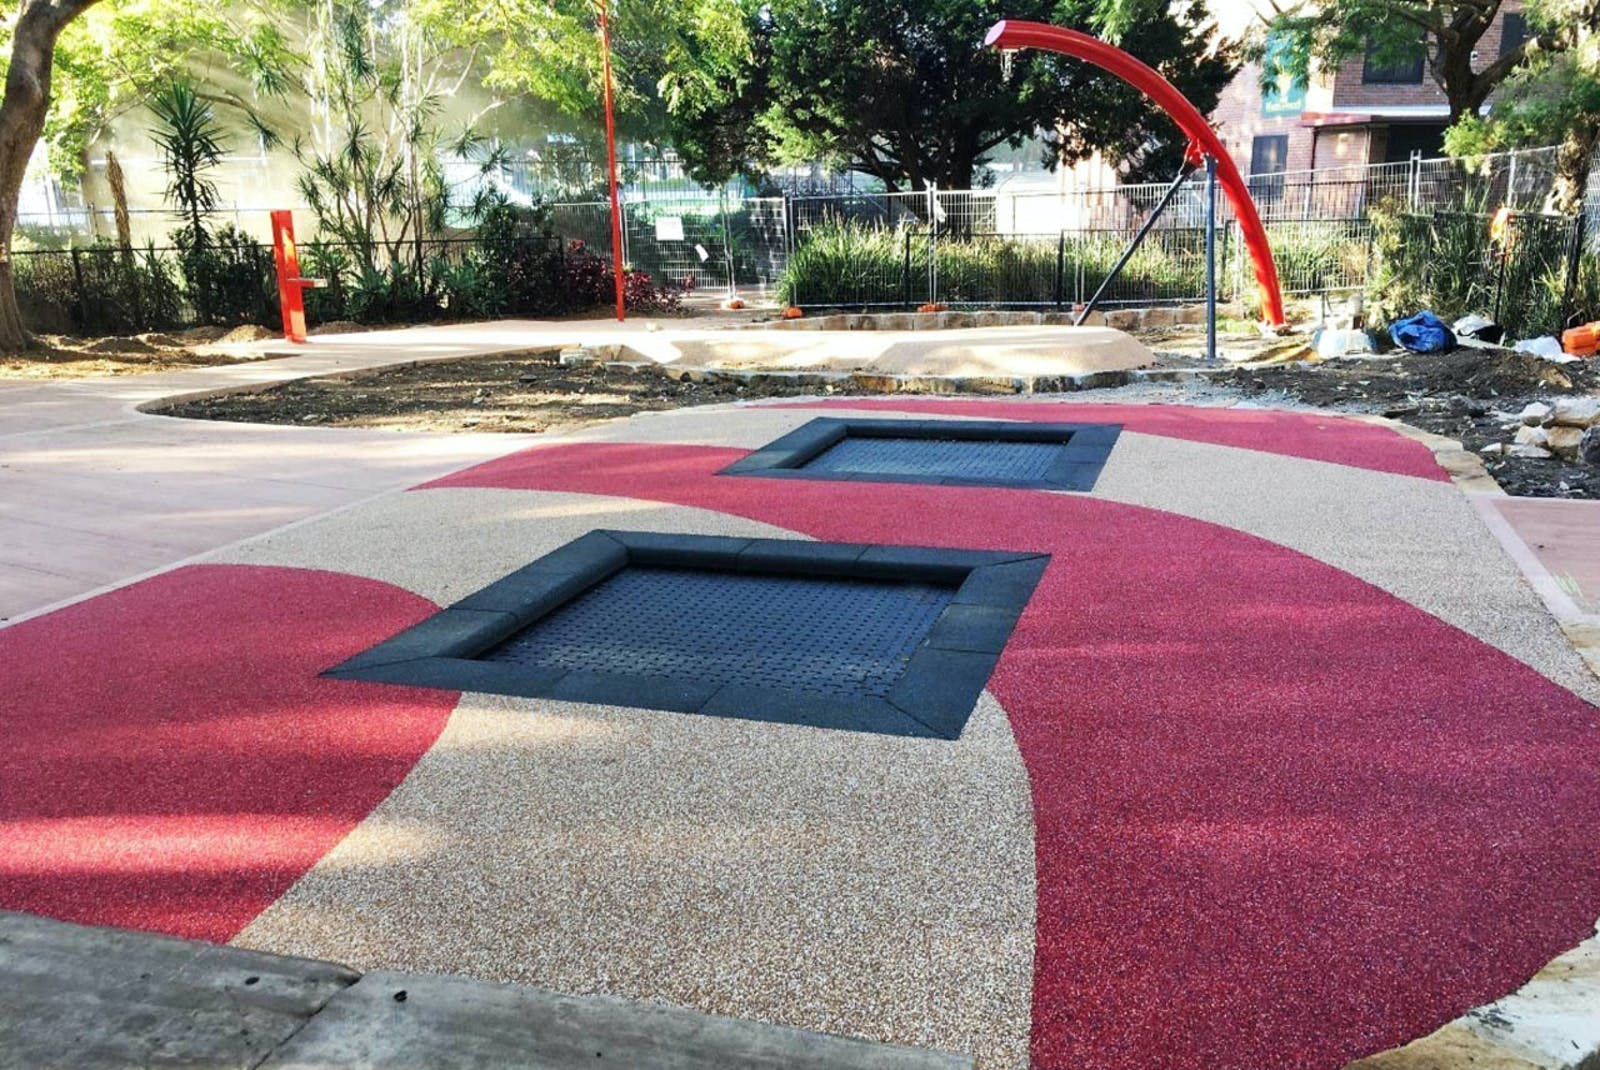 trampolines - Chatswood Park